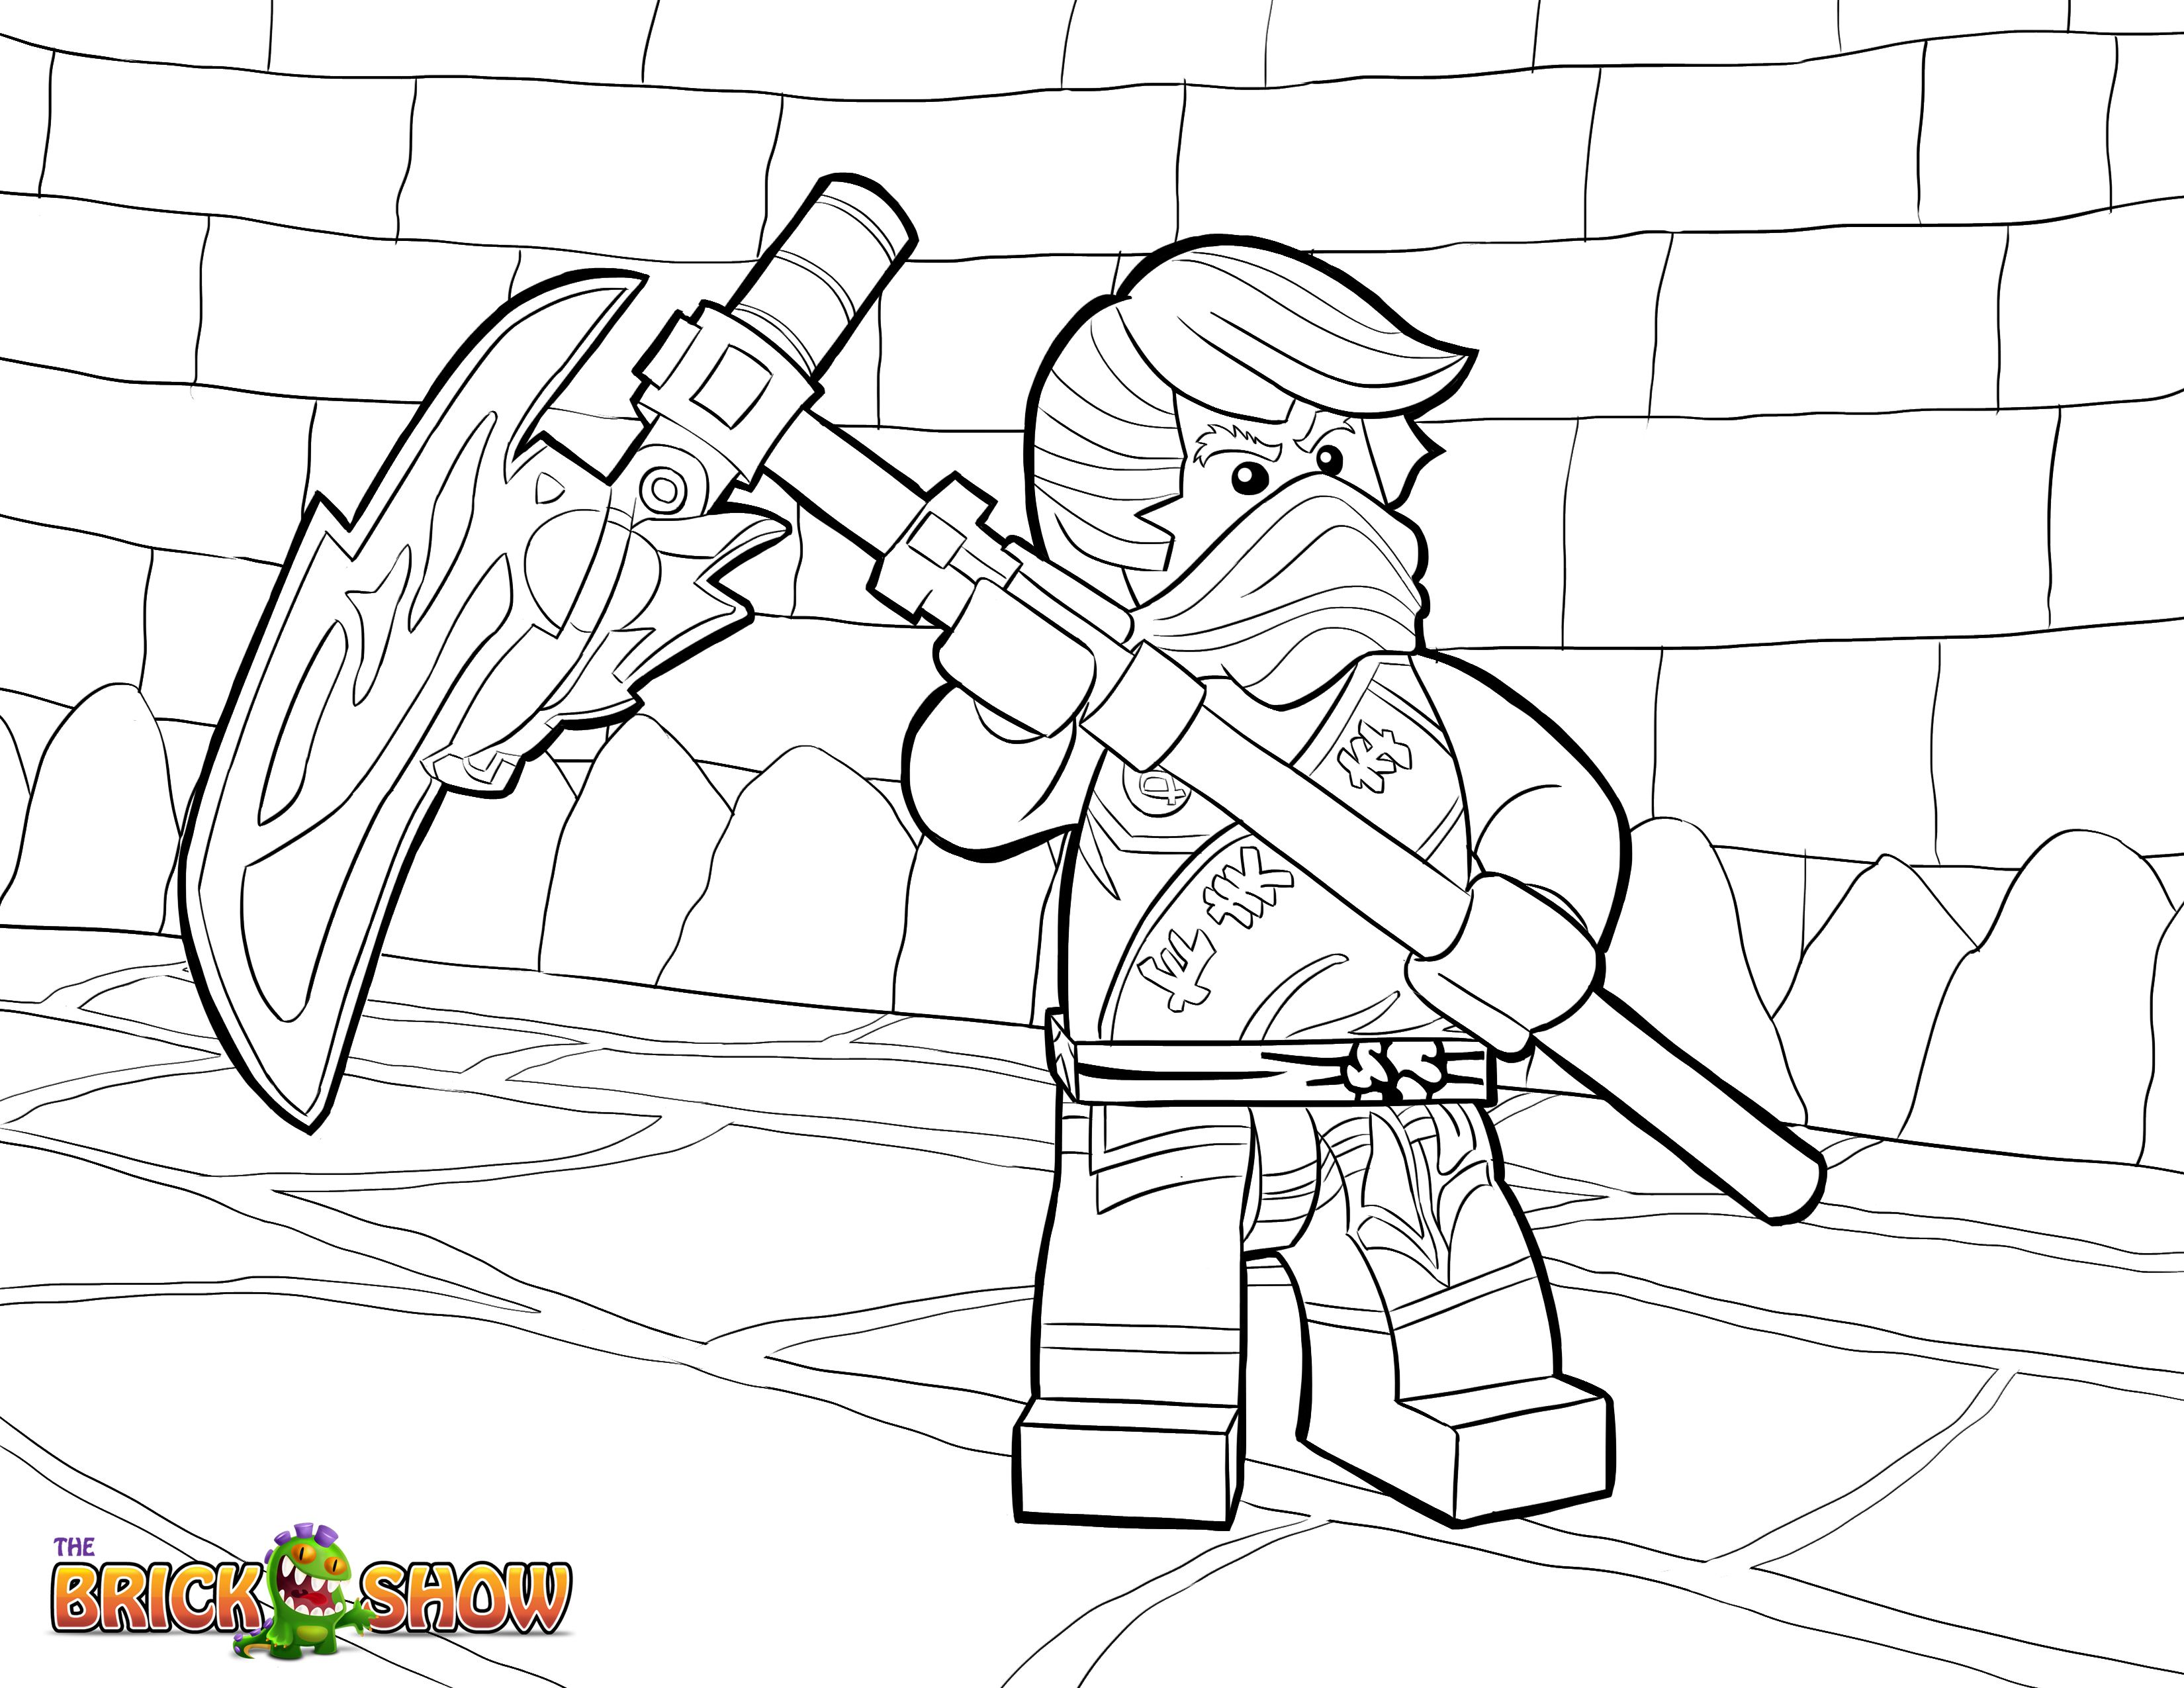 Brick Show Coloring Pages - Coloring Style Pages